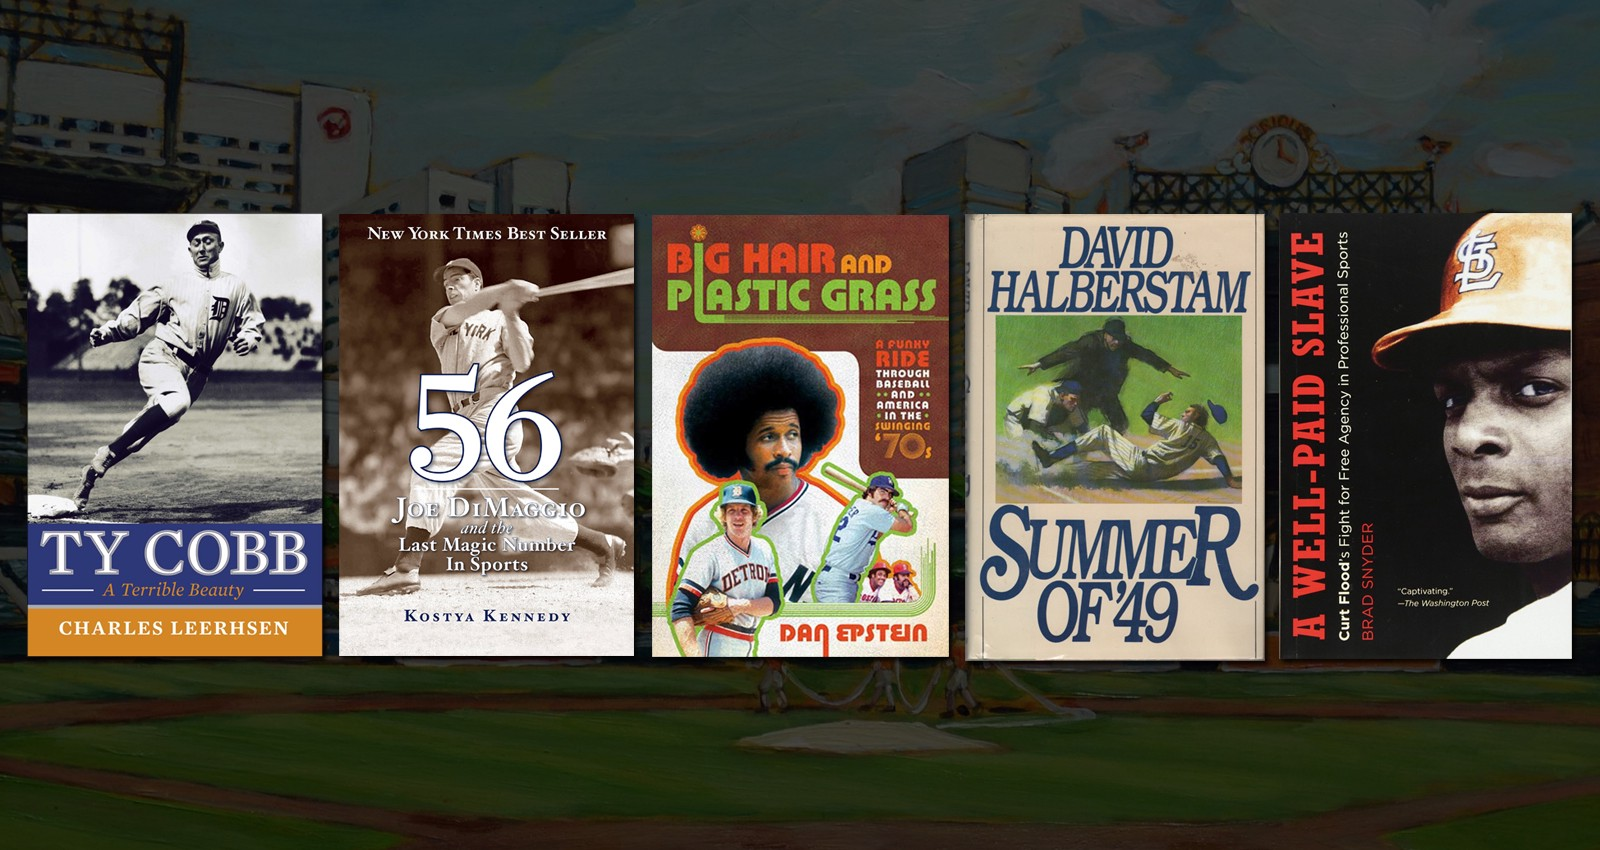 bf7cade01f4 Baseball and literature have a long and intertwined history